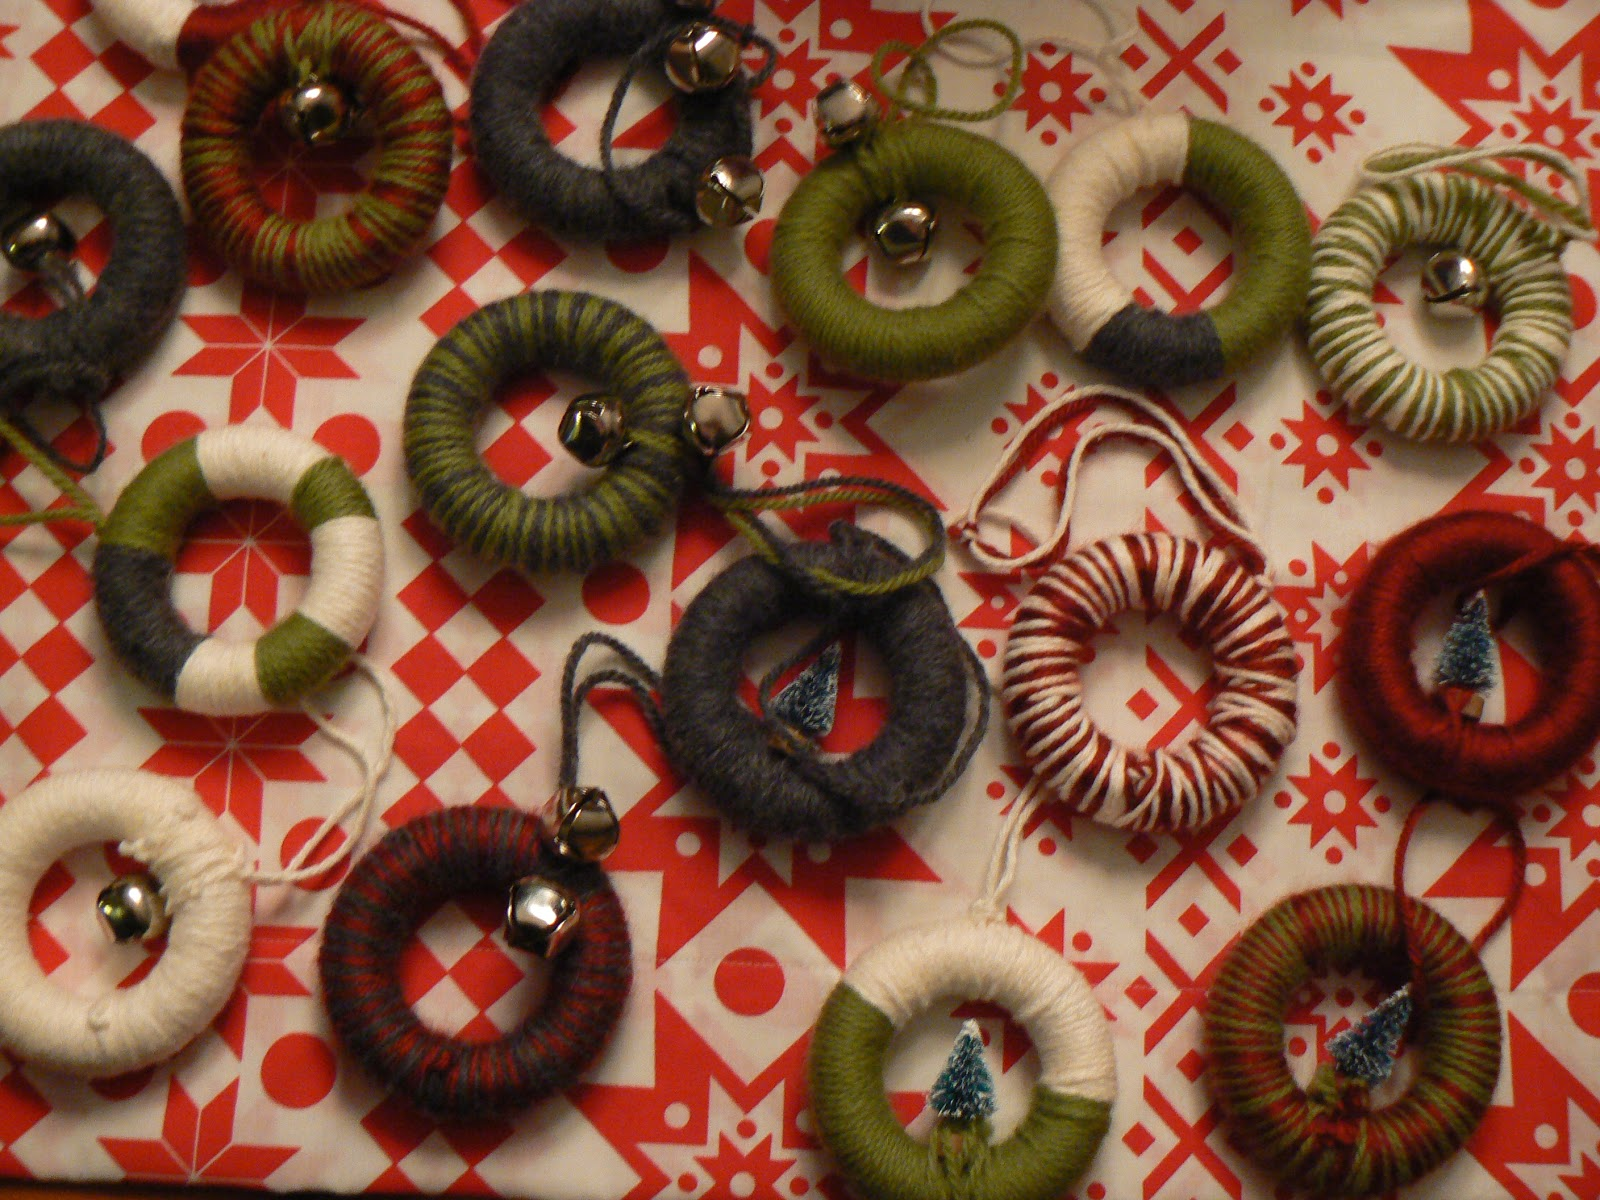 Miniature ornaments - I Made Mini Yarn Wrapped Wreath Ornaments You Know Why I Love Them Because They Are Miniature Of Course There Is Literally No Skill Involved In Making